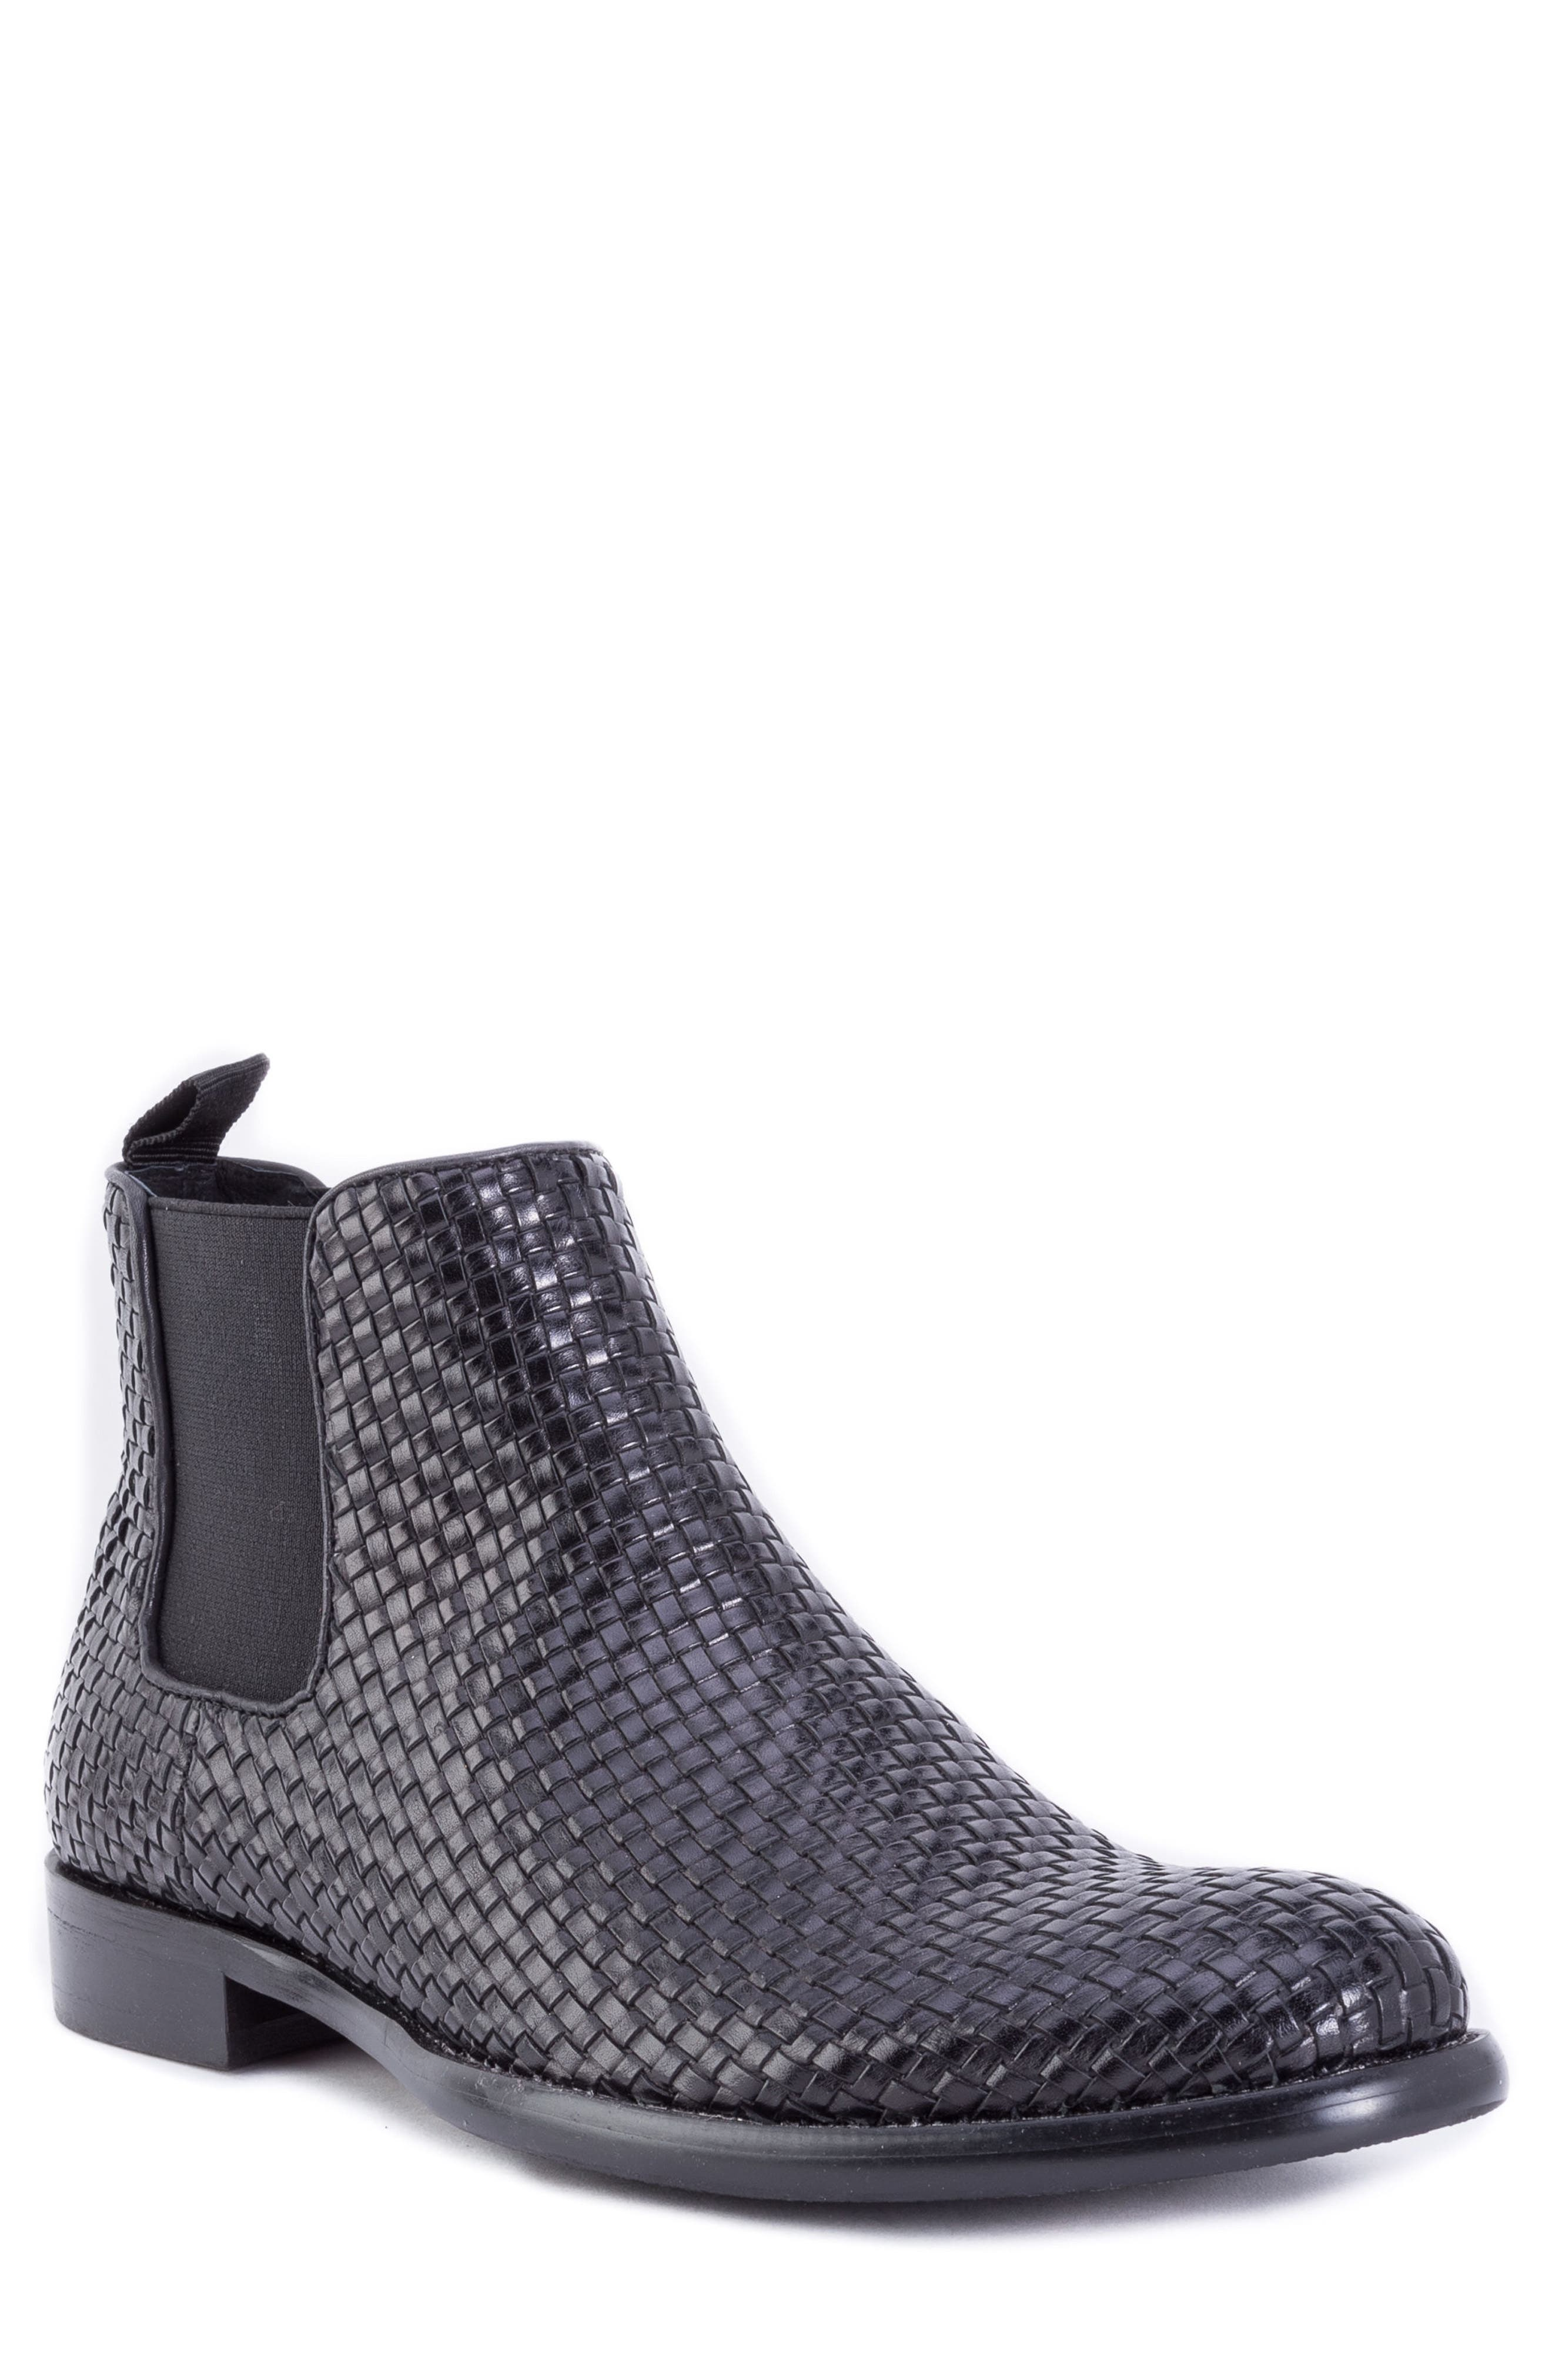 Woodward Woven Chelsea Boot,                             Main thumbnail 1, color,                             BLACK LEATHER